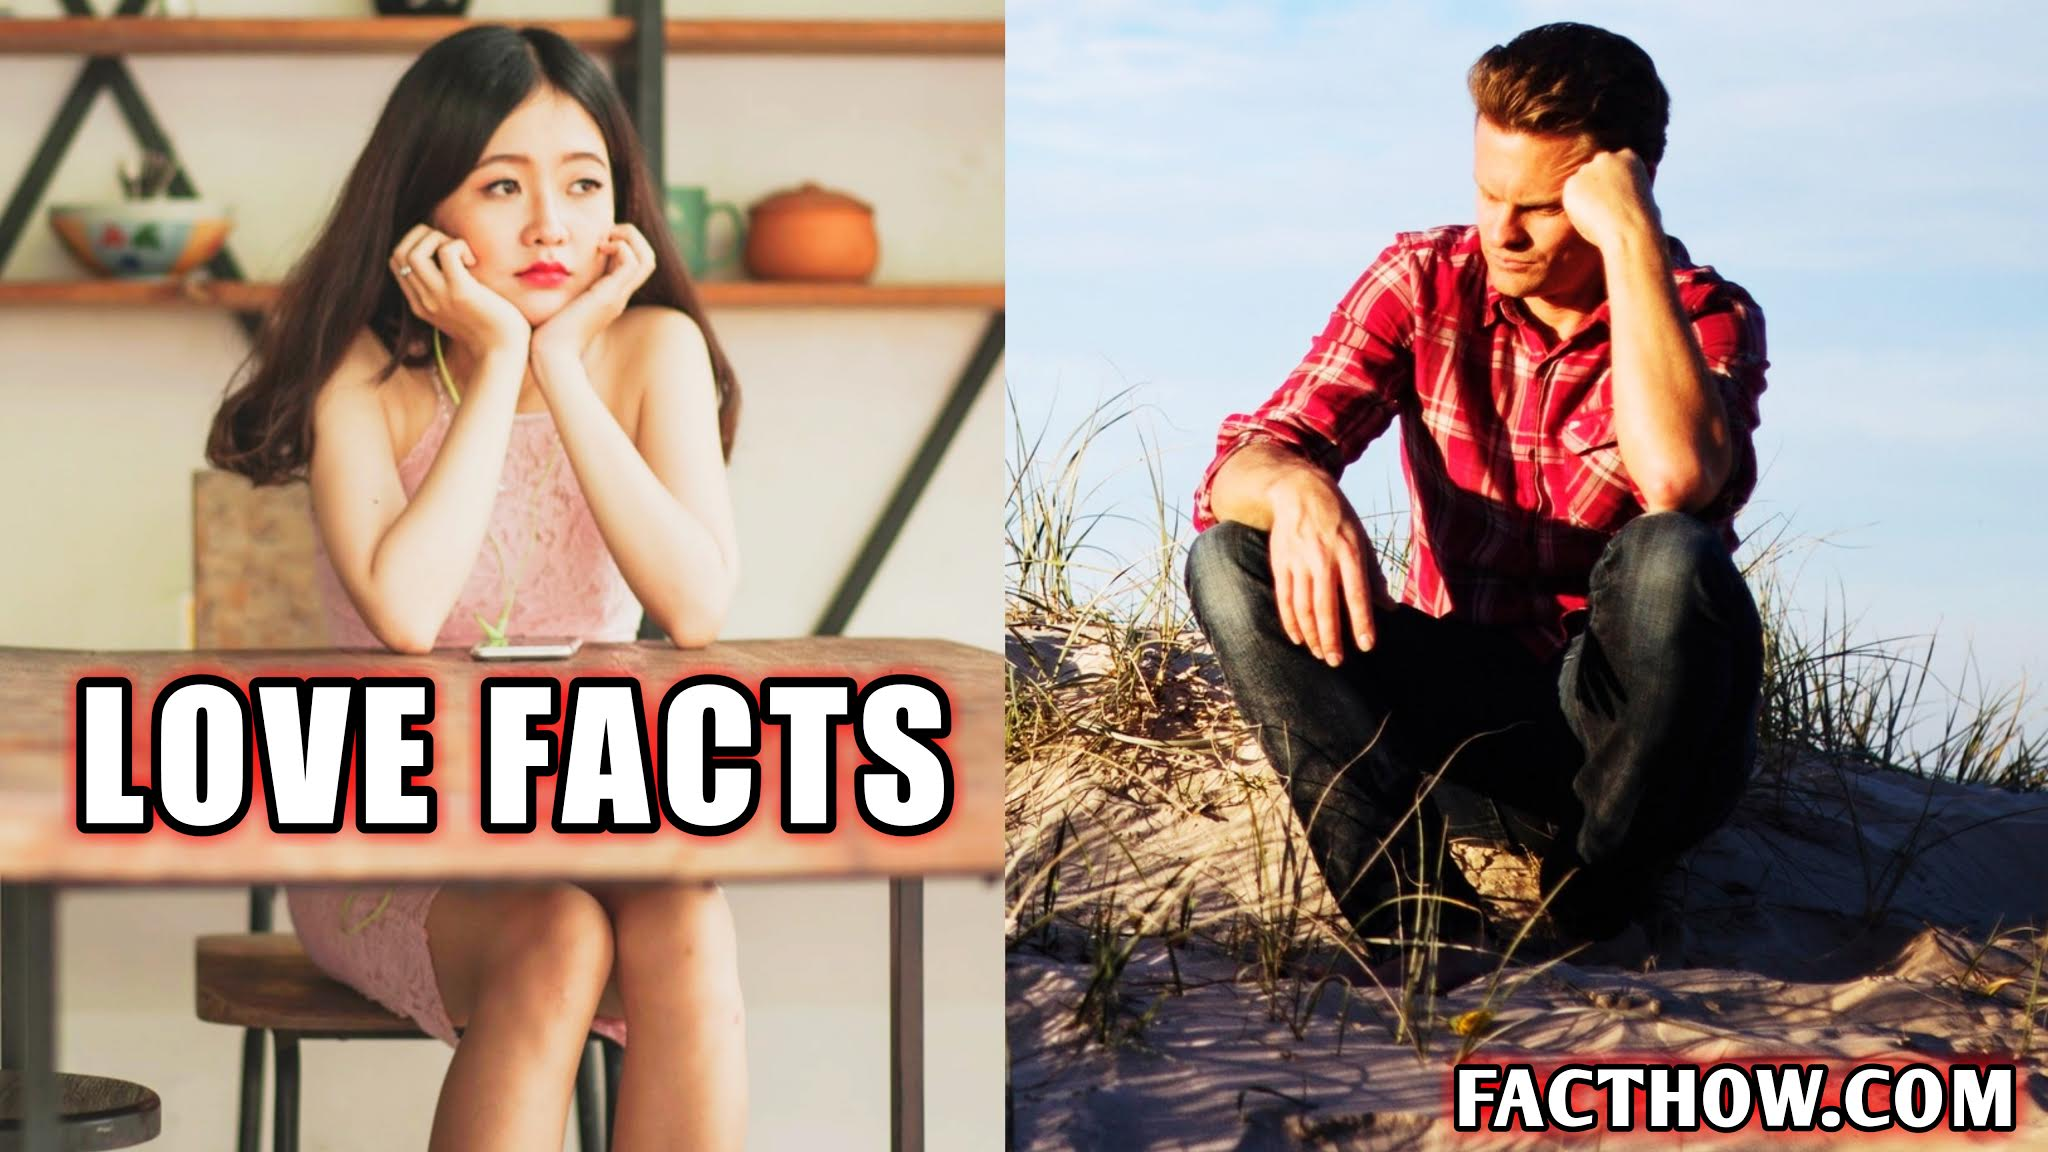 100 interesting facts about love